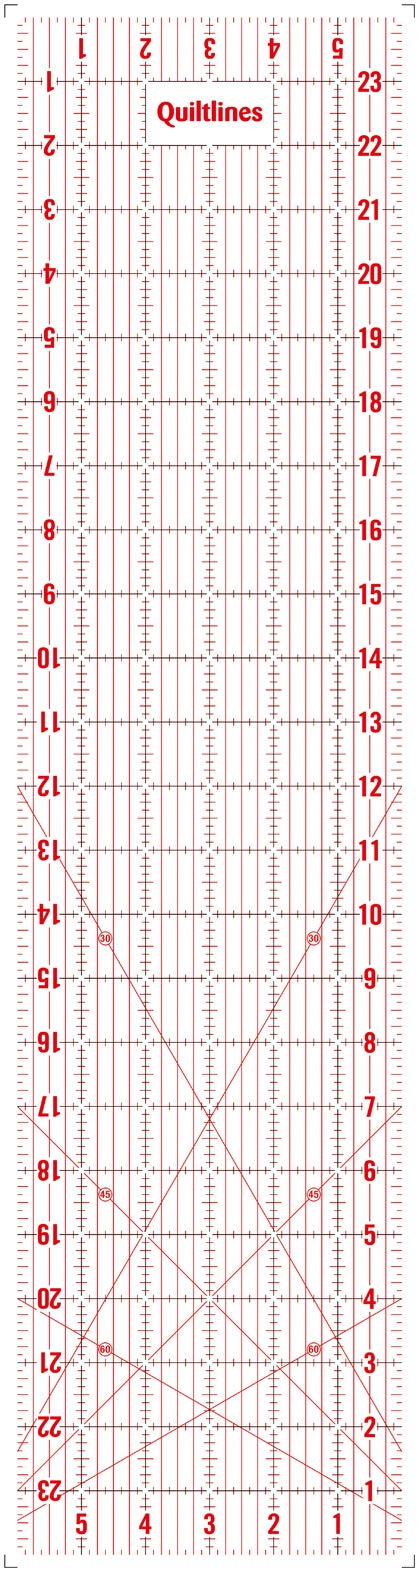 "Quilting Ruler - 6 x 24"" Imperial by Quiltlines"